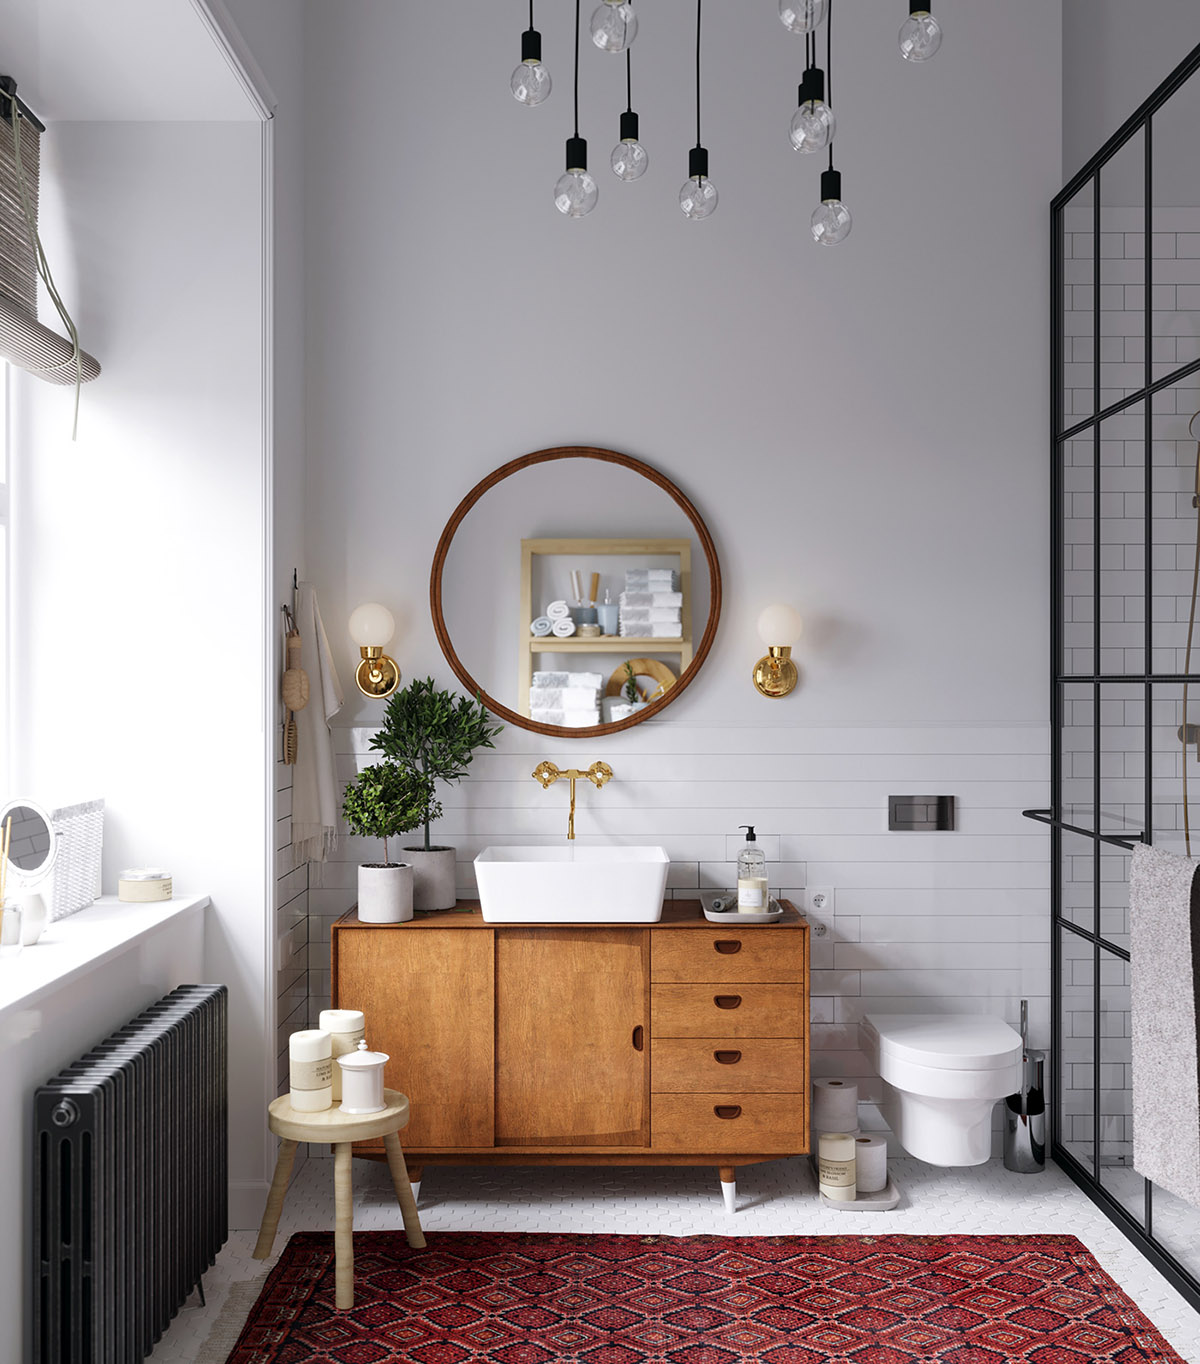 Earthy Eclectic Scandinavian Style Interior images 24